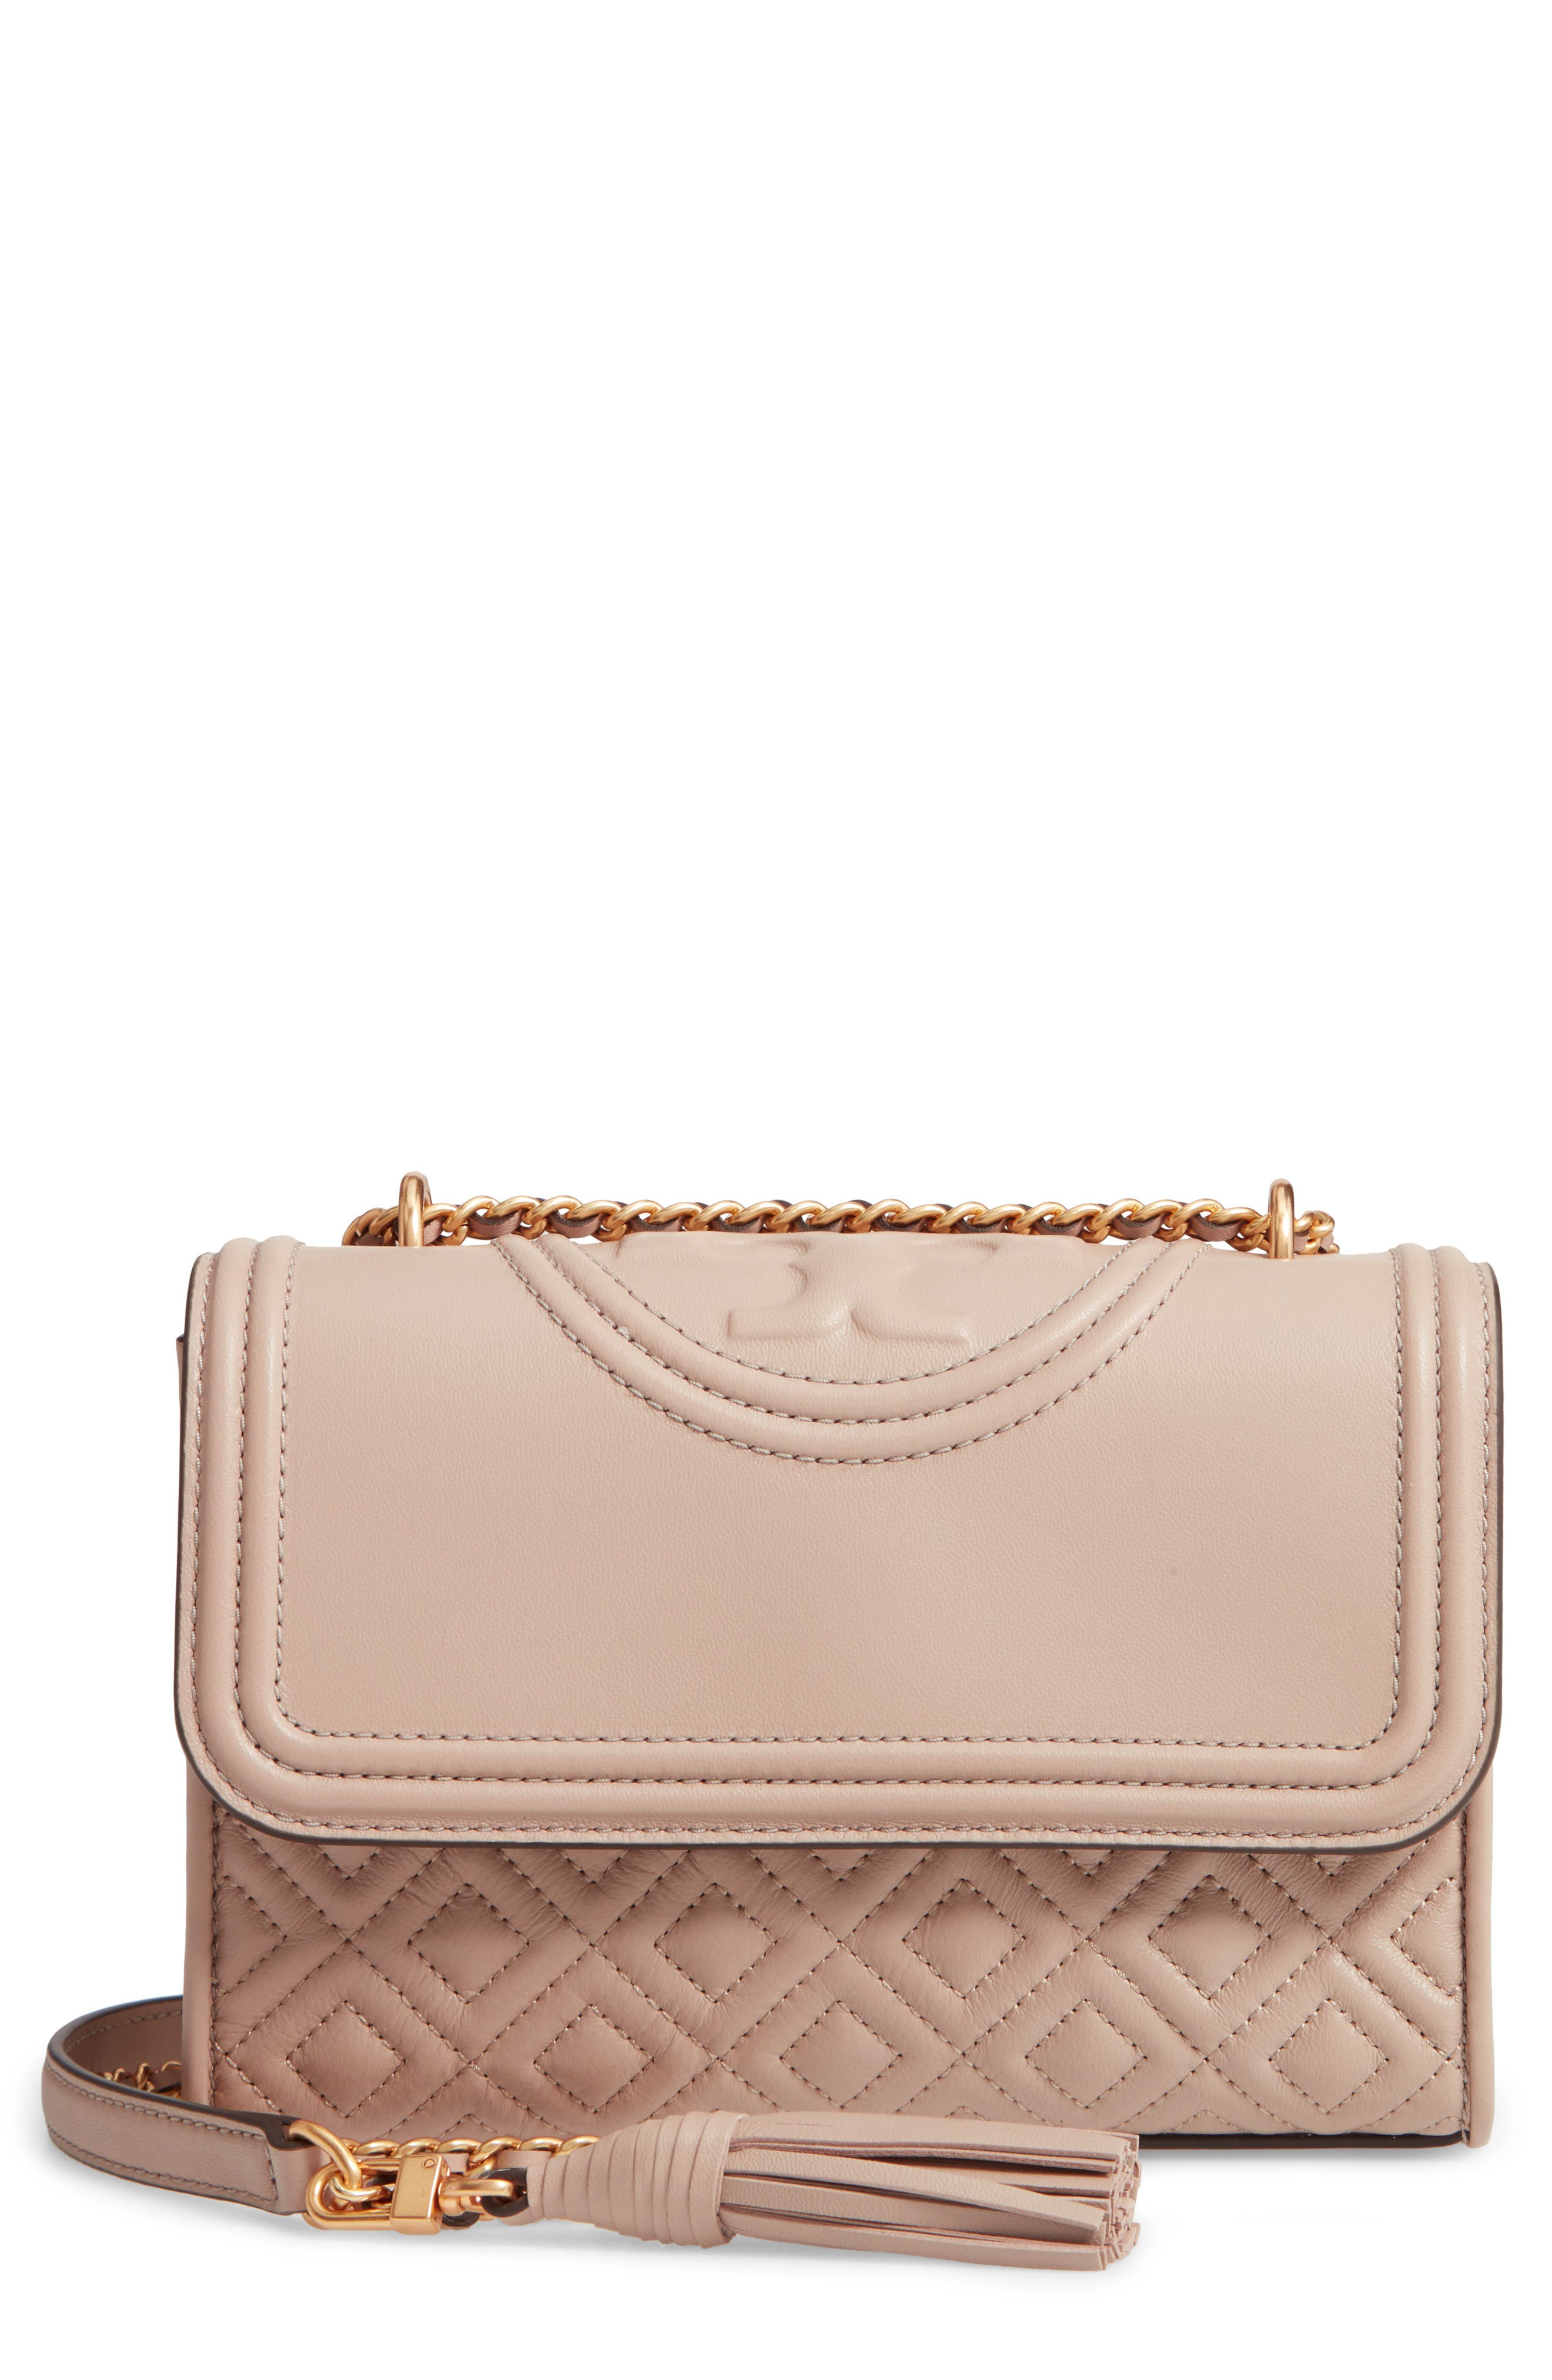 TORY BURCH Small Fleming Leather Convertible Shoulder Bag, Main, color, LIGHT TAUPE